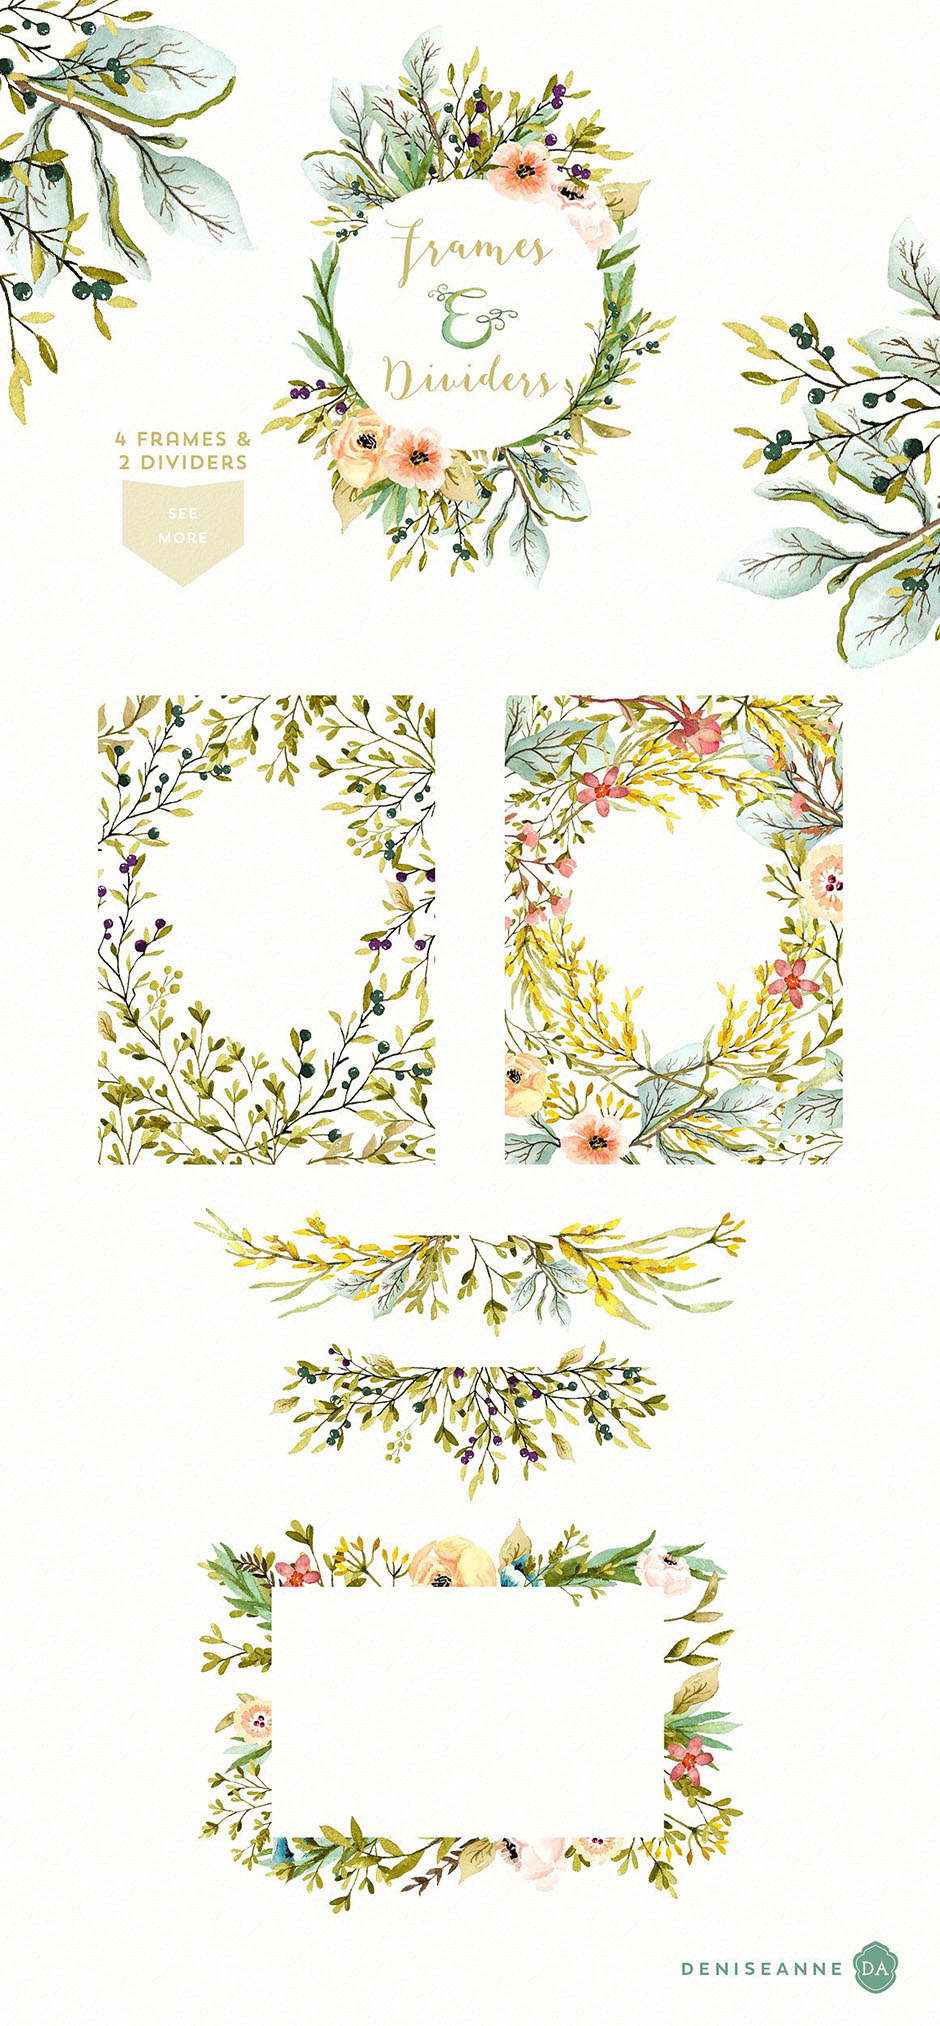 Mountainside Meadows Wildflowers: Floral Illustrations